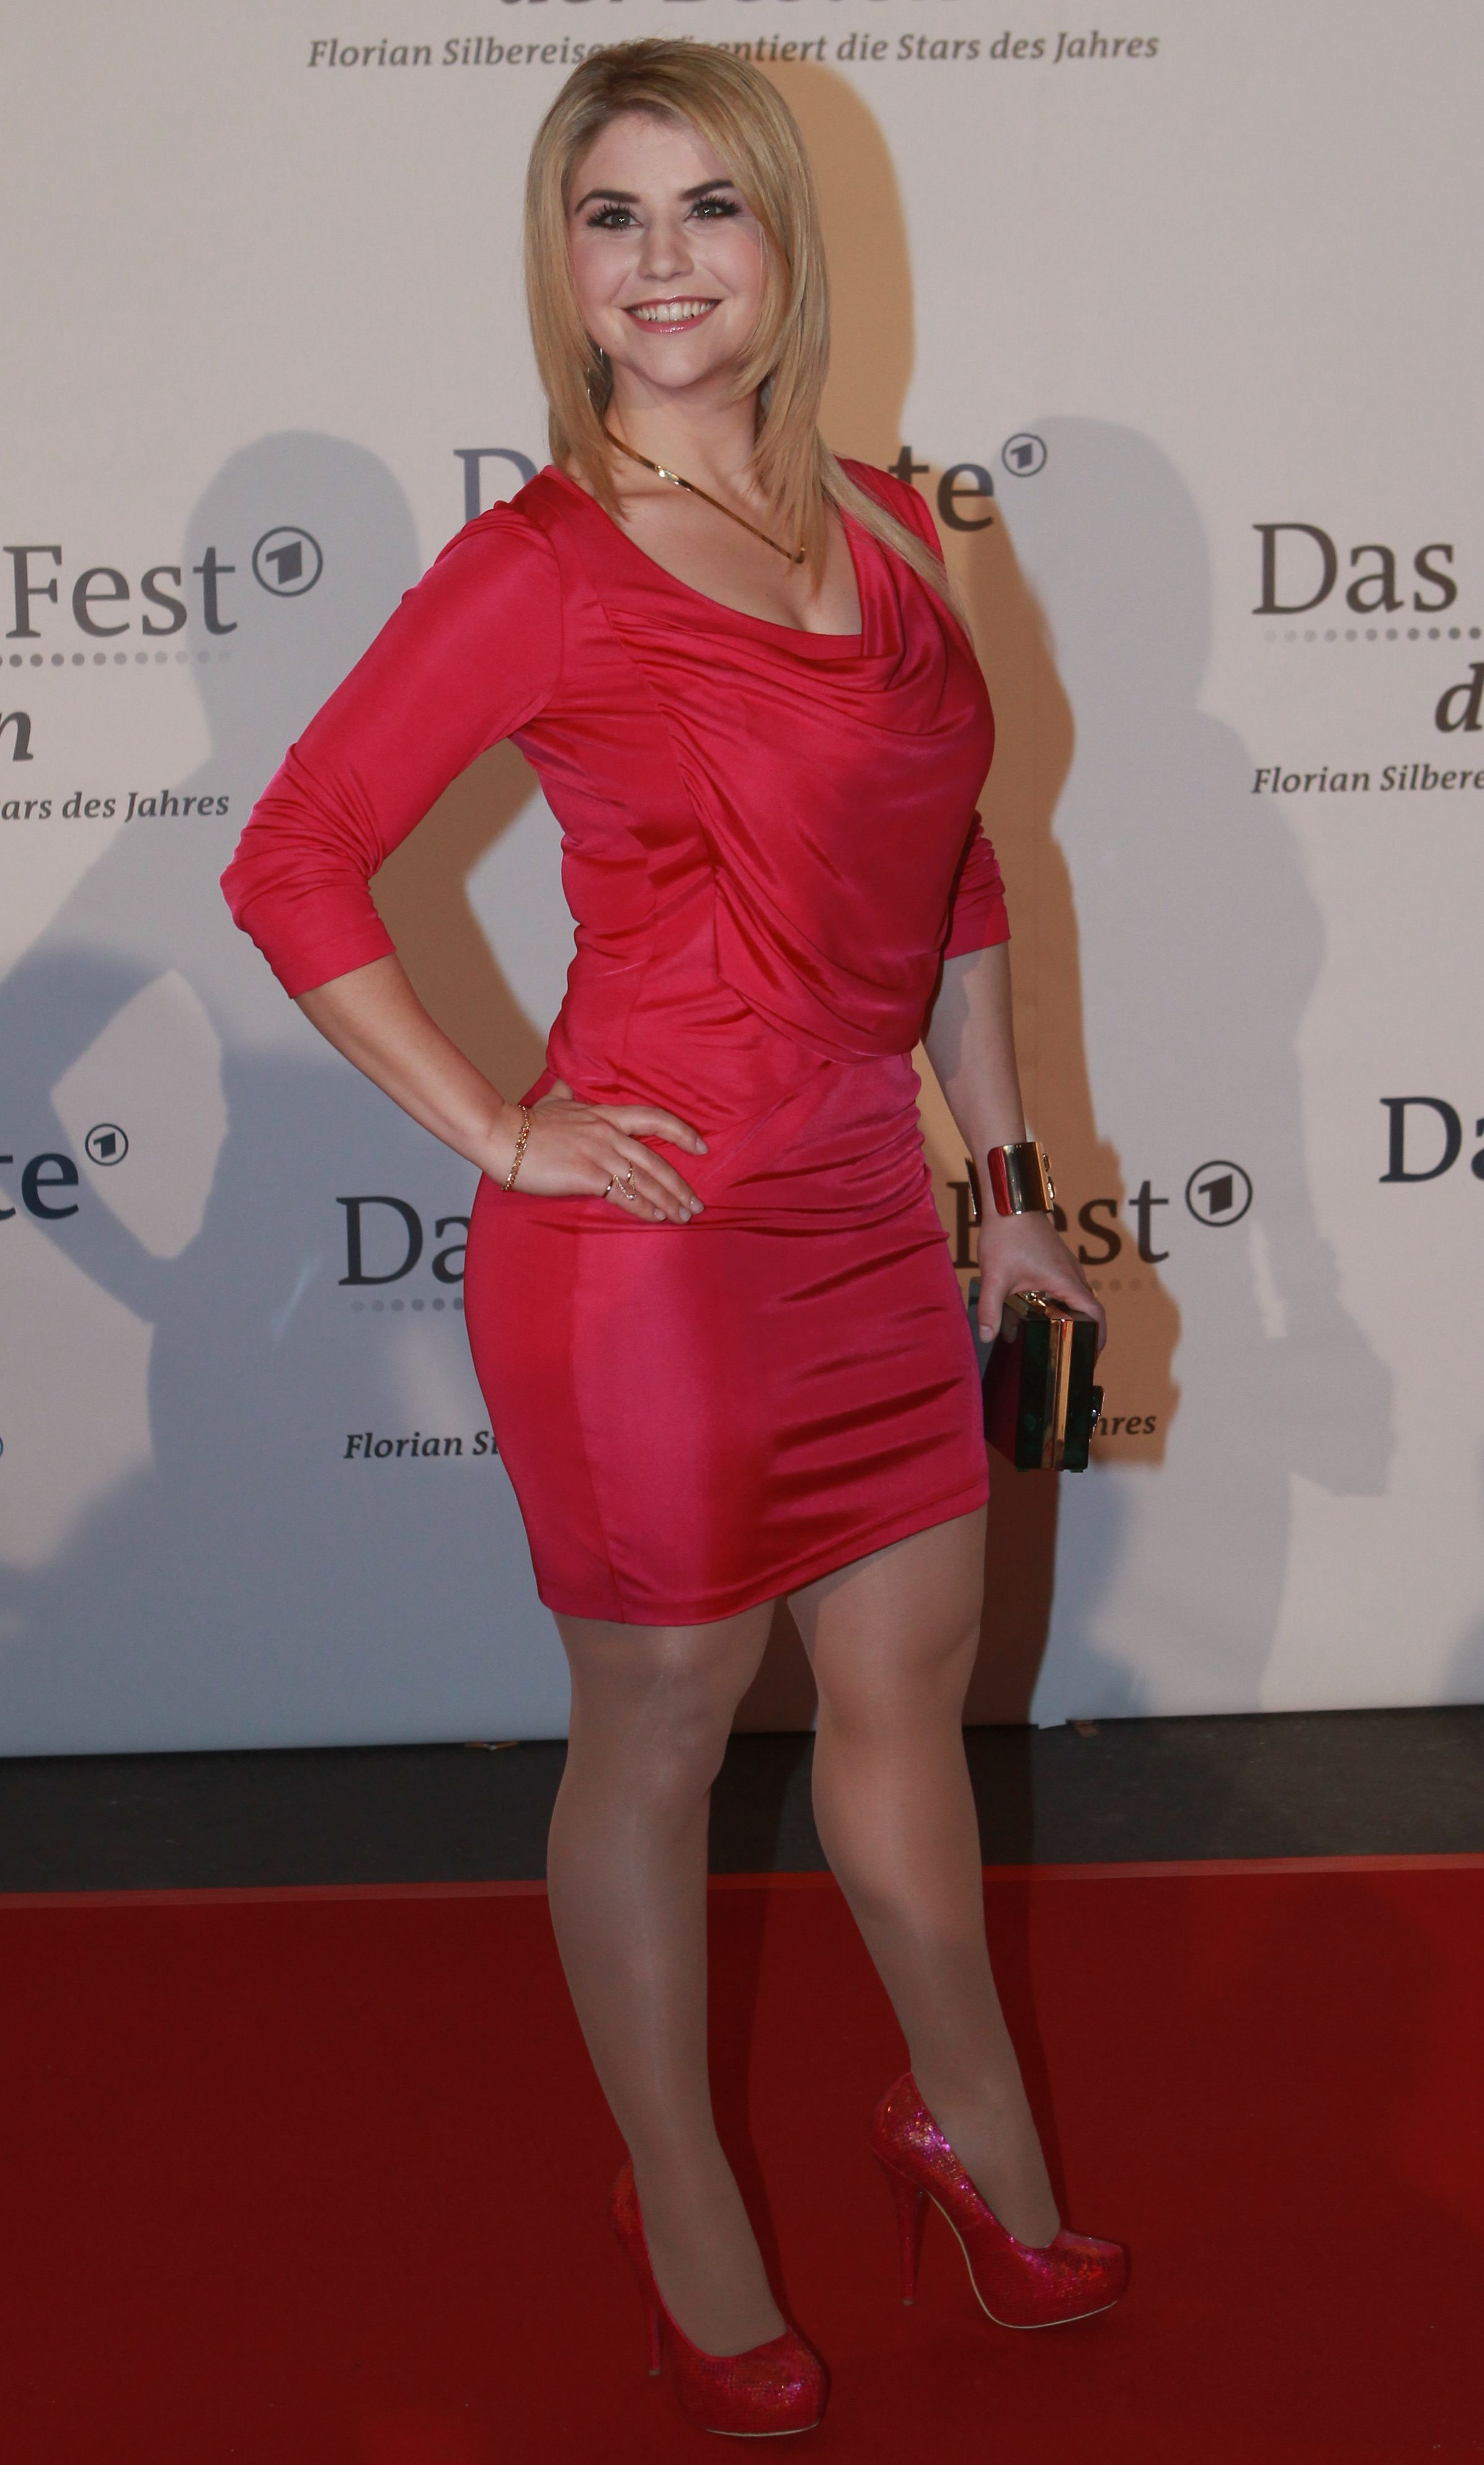 Beatrice Egli looking amazing in a little red dress